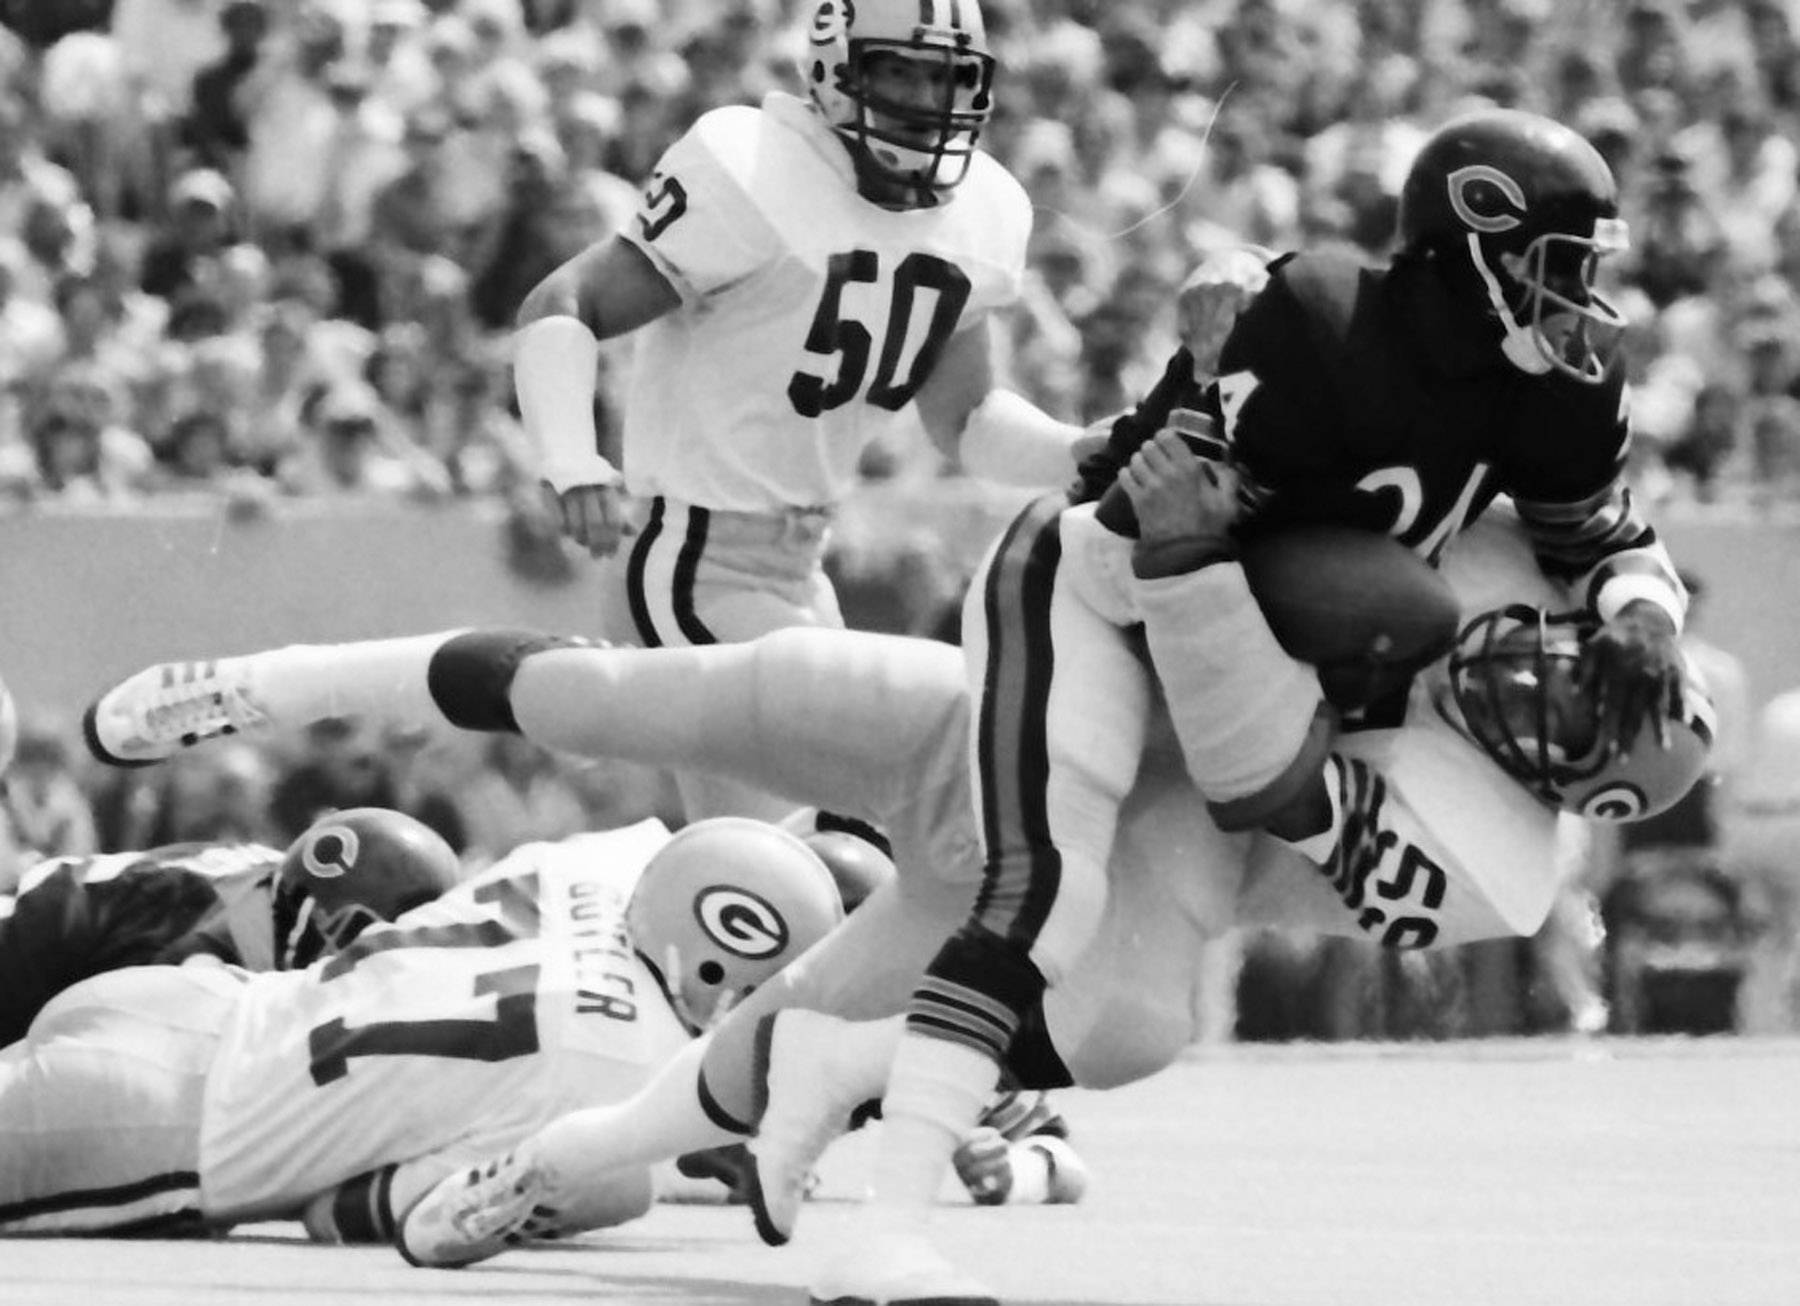 John Anderson of the Packers tackles Walter Payton of the Bears during a game between the Green Bay Packers and the Chicago Bears at Soldier Field in Chicago on Sept. 6, 1981.